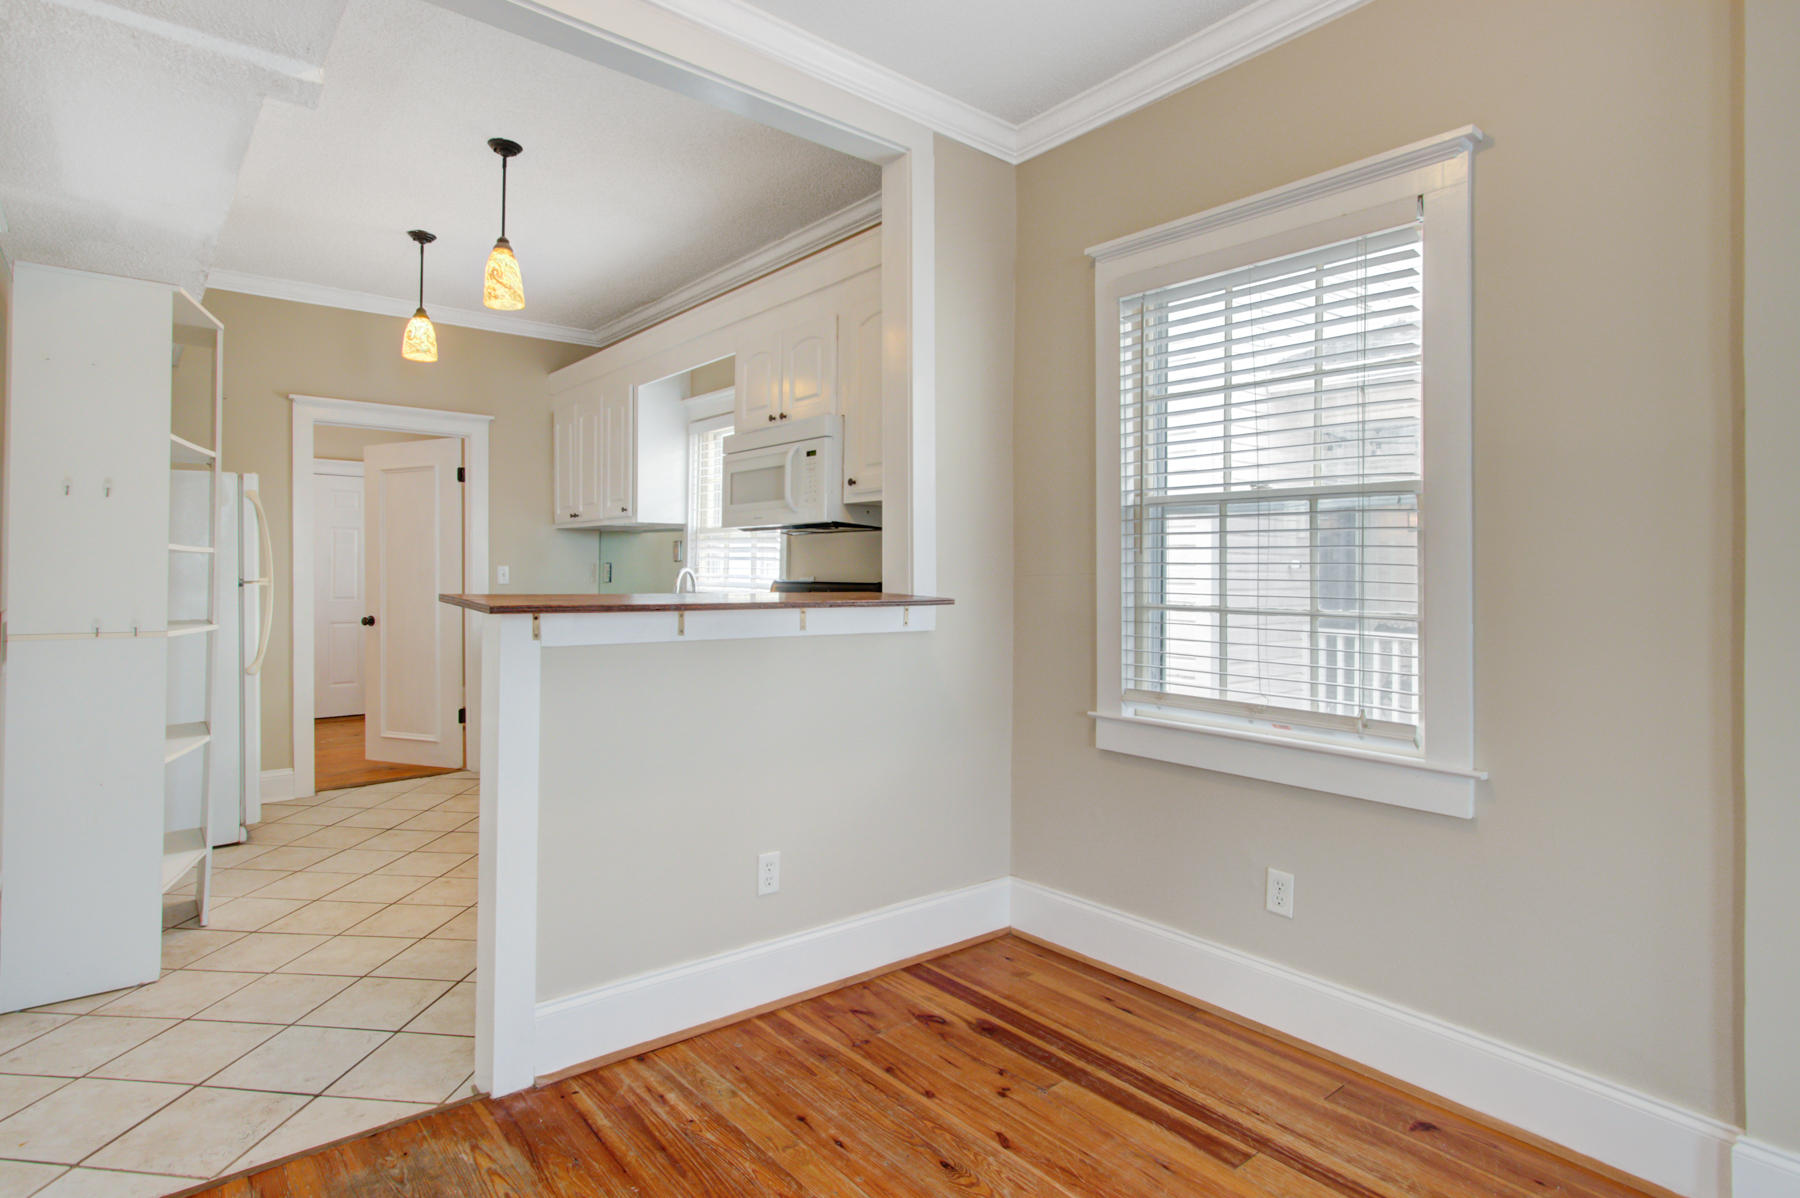 Elliotborough Condos For Sale - 3 Kracke, Charleston, SC - 3